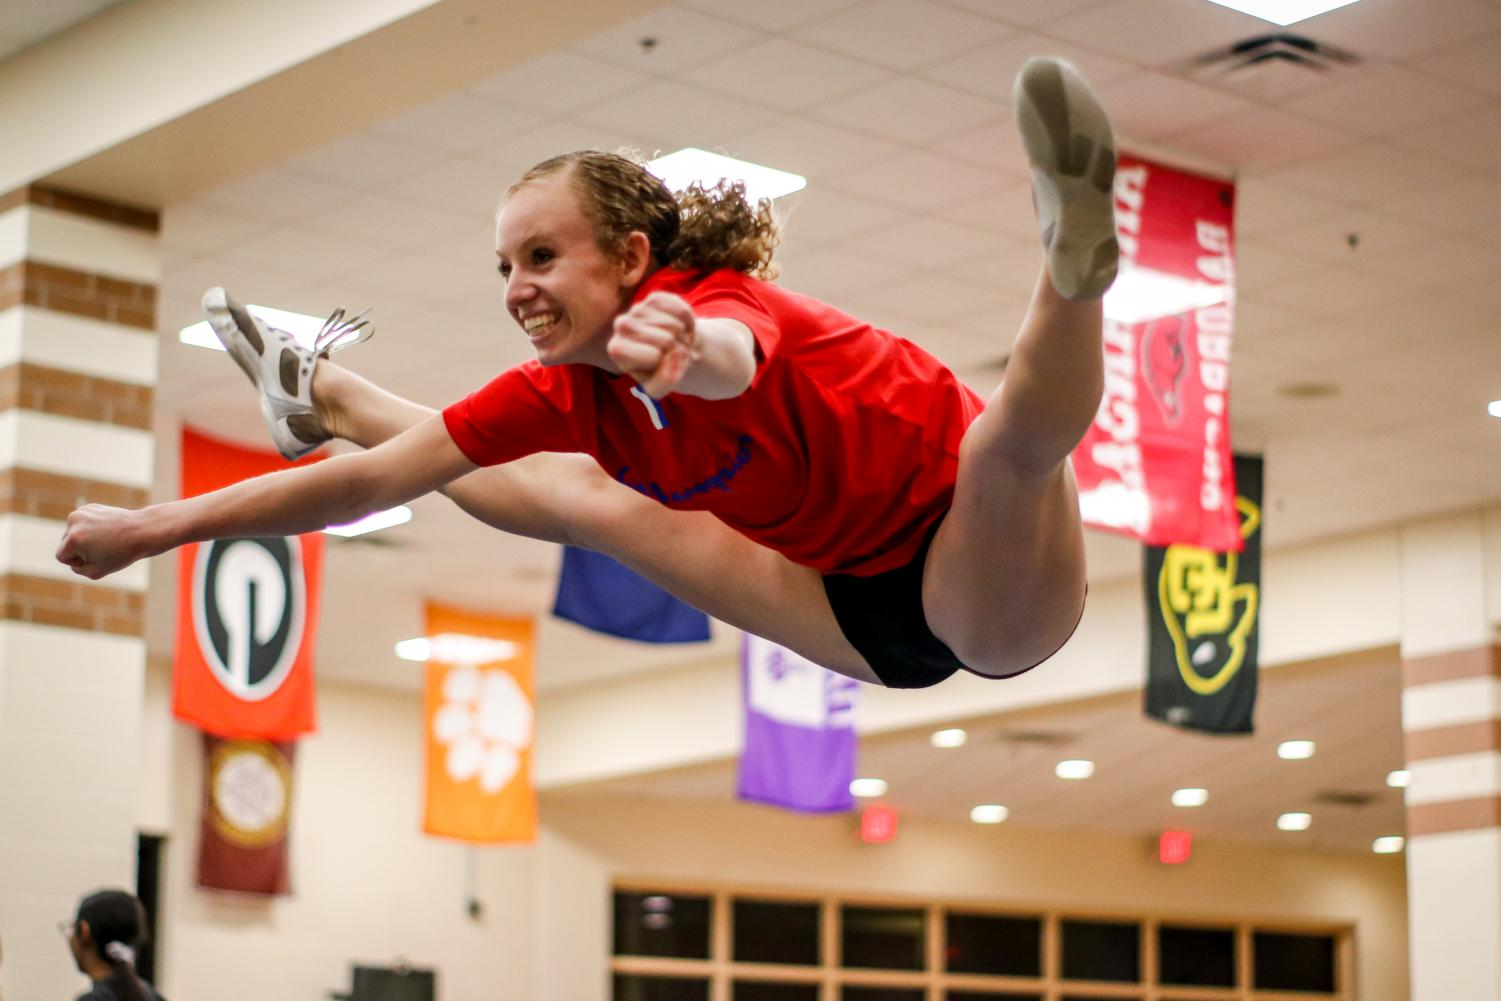 Cheerleader pushes past injuries in hopes to make it on Navarro